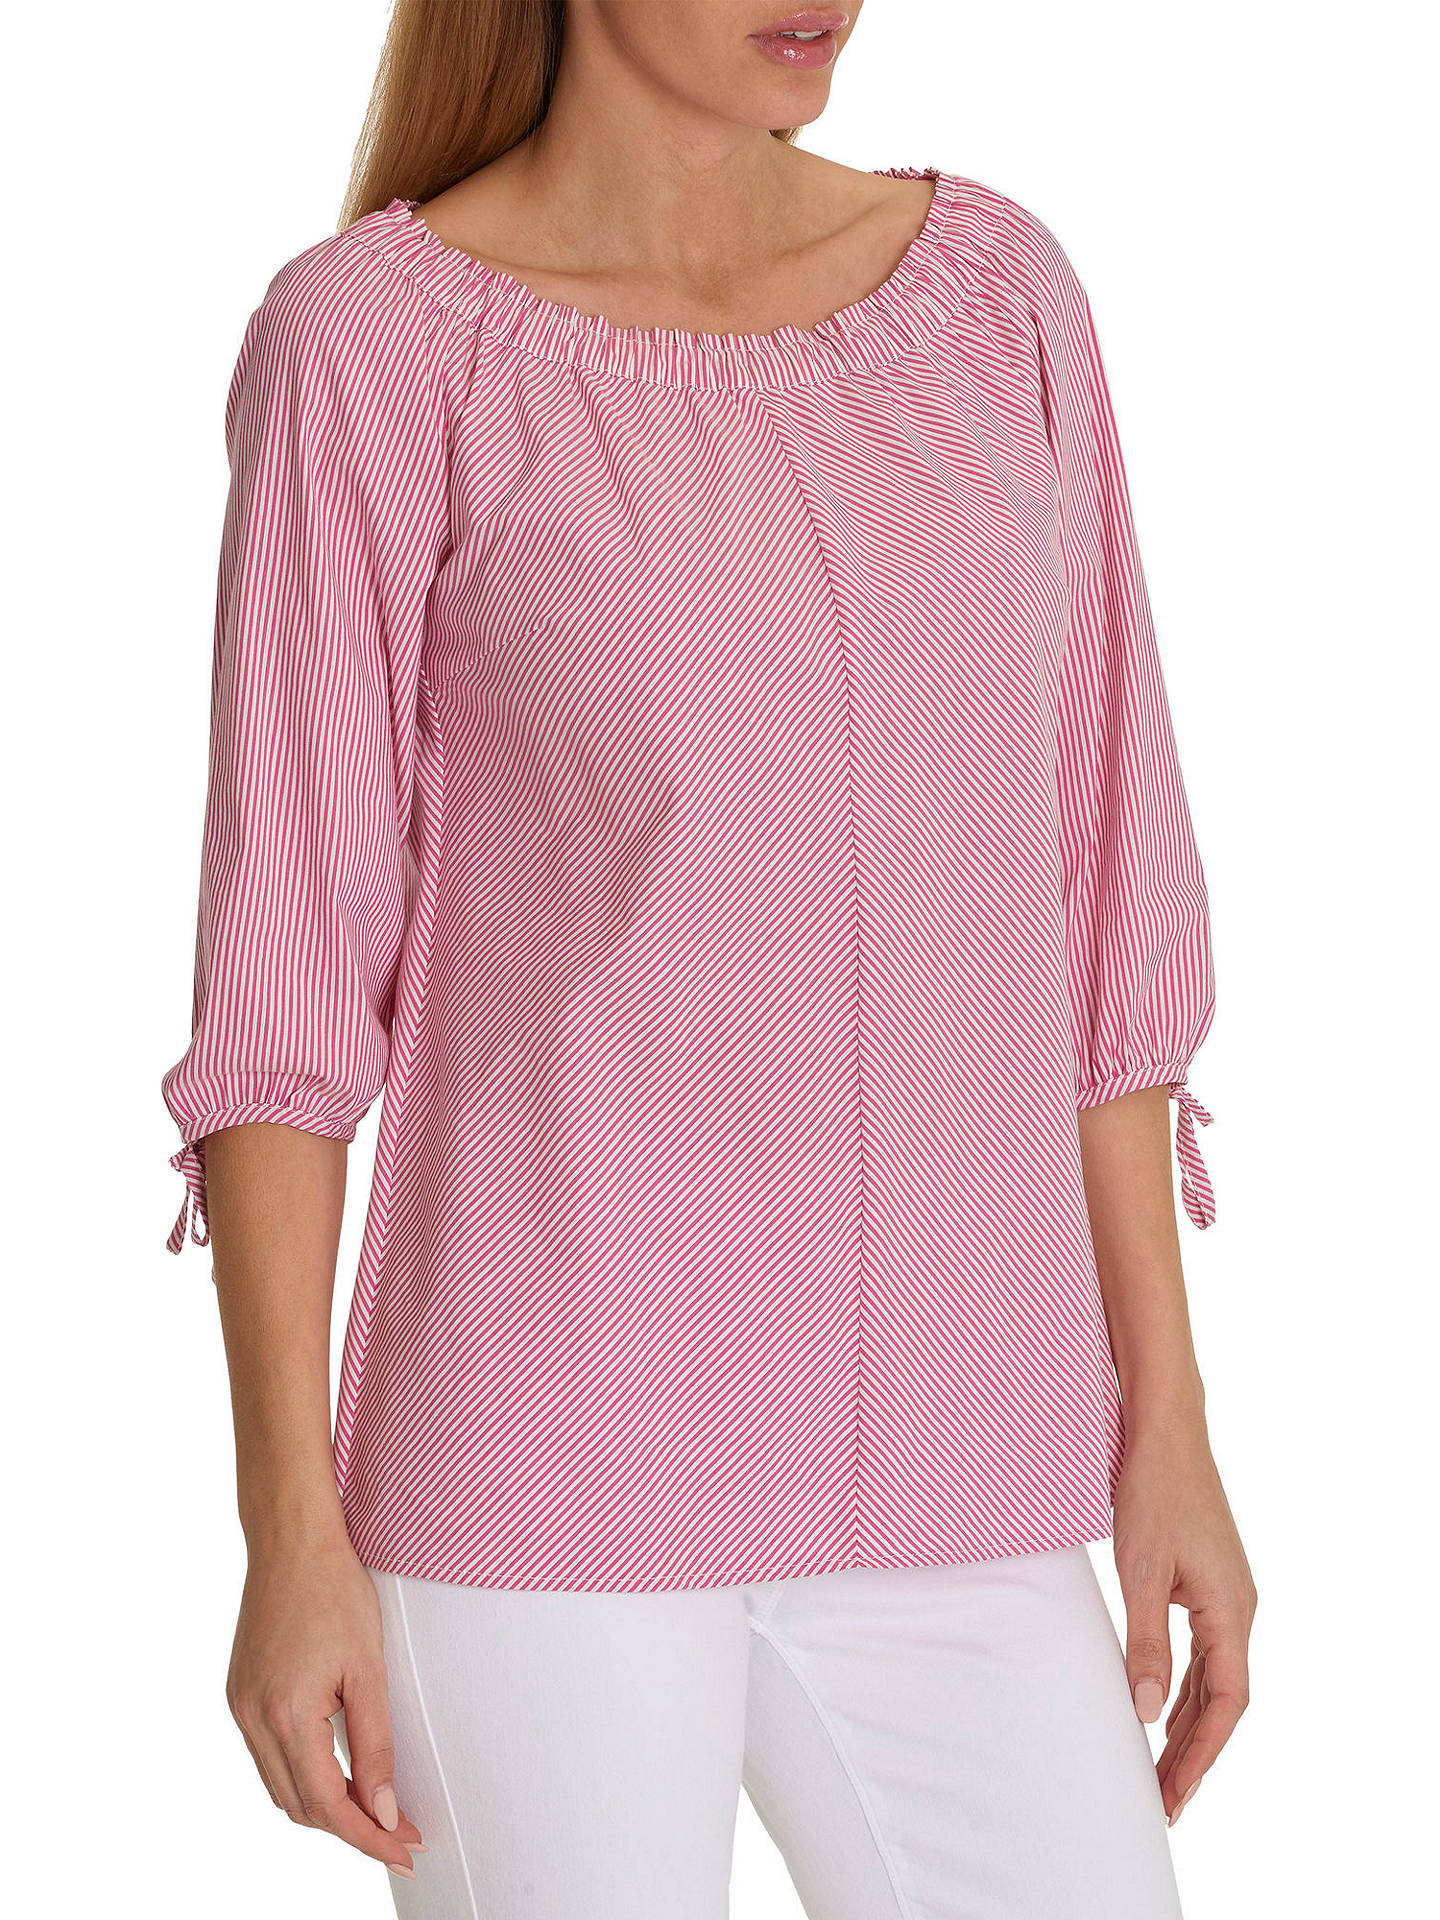 cfd07148684a4e Buy Betty Barclay Tie Sleeve Striped Blouse, Pink/Cream, 10 Online at  johnlewis ...